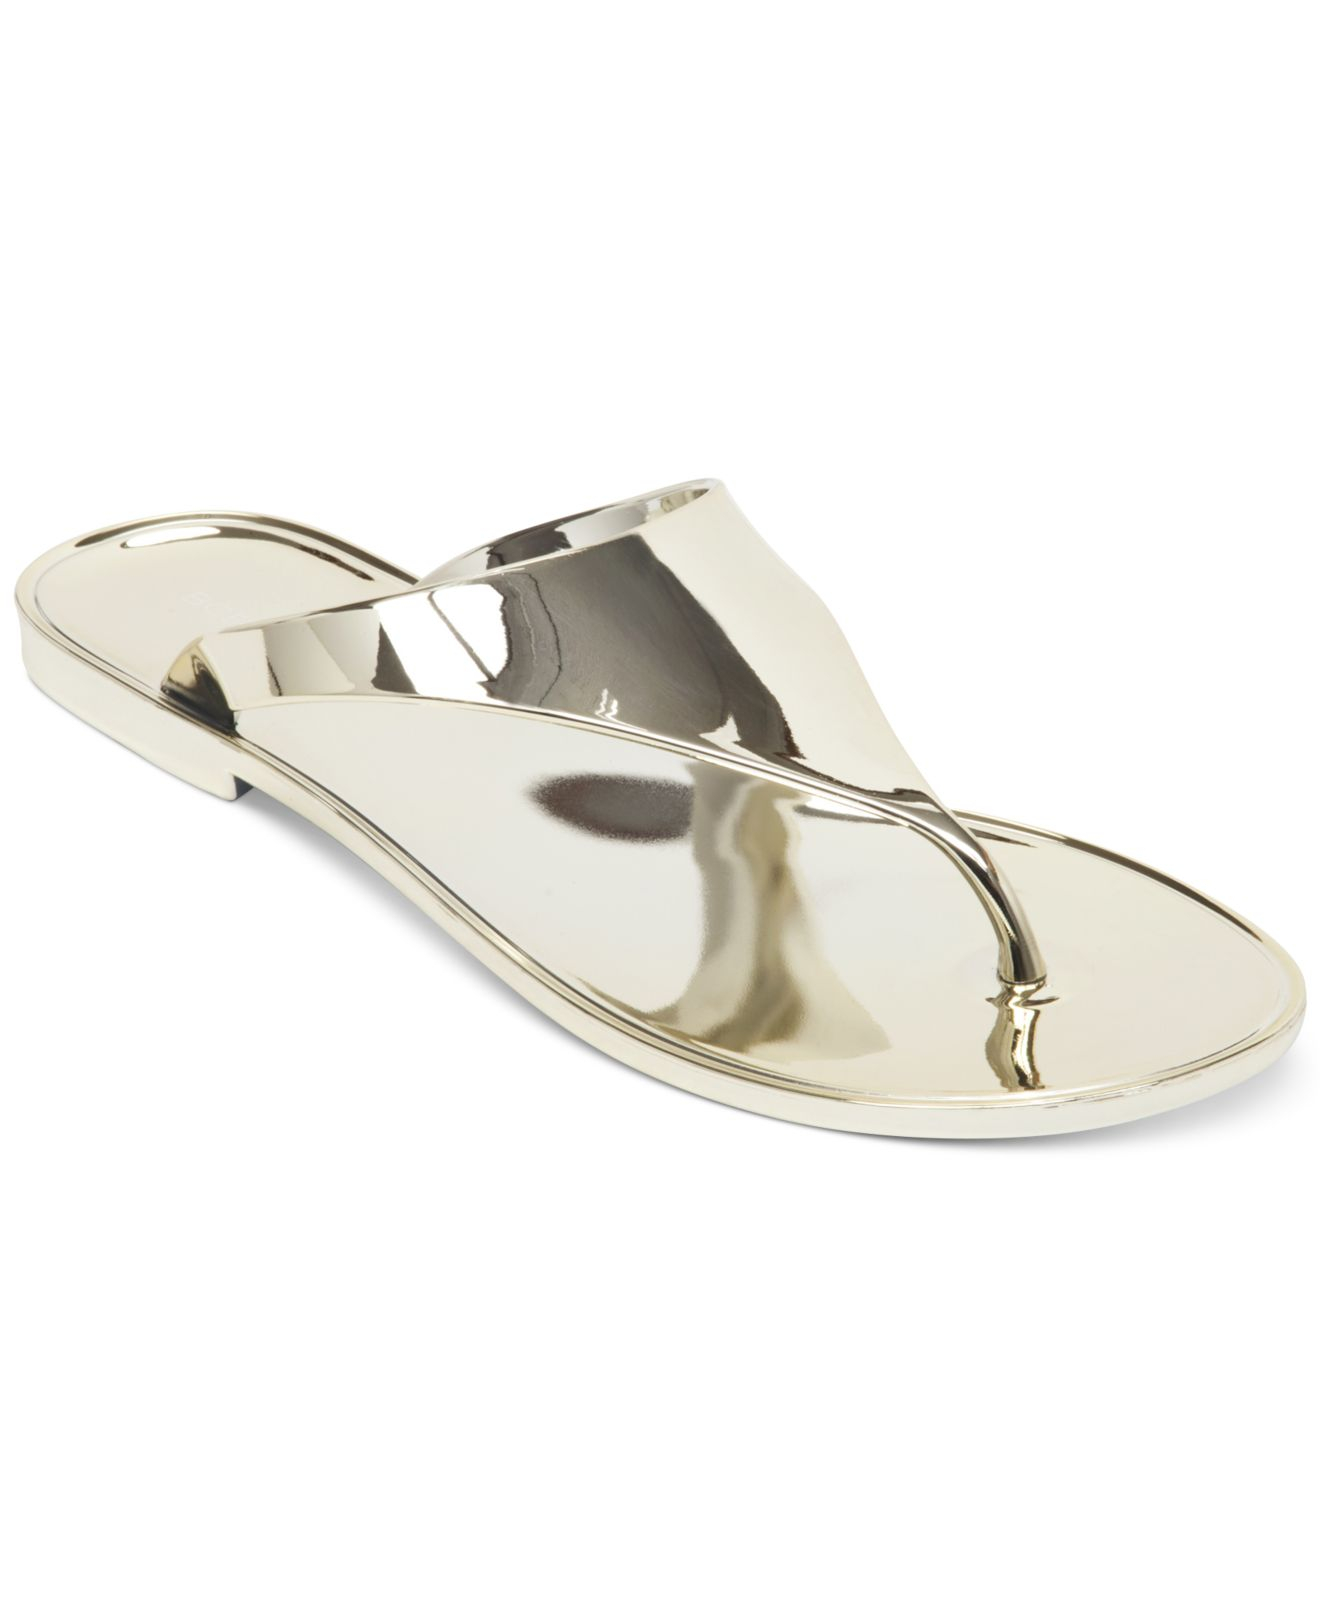 be5022c0d6f2 Lyst - BCBGeneration Starr Flat Thong Sandals in Metallic